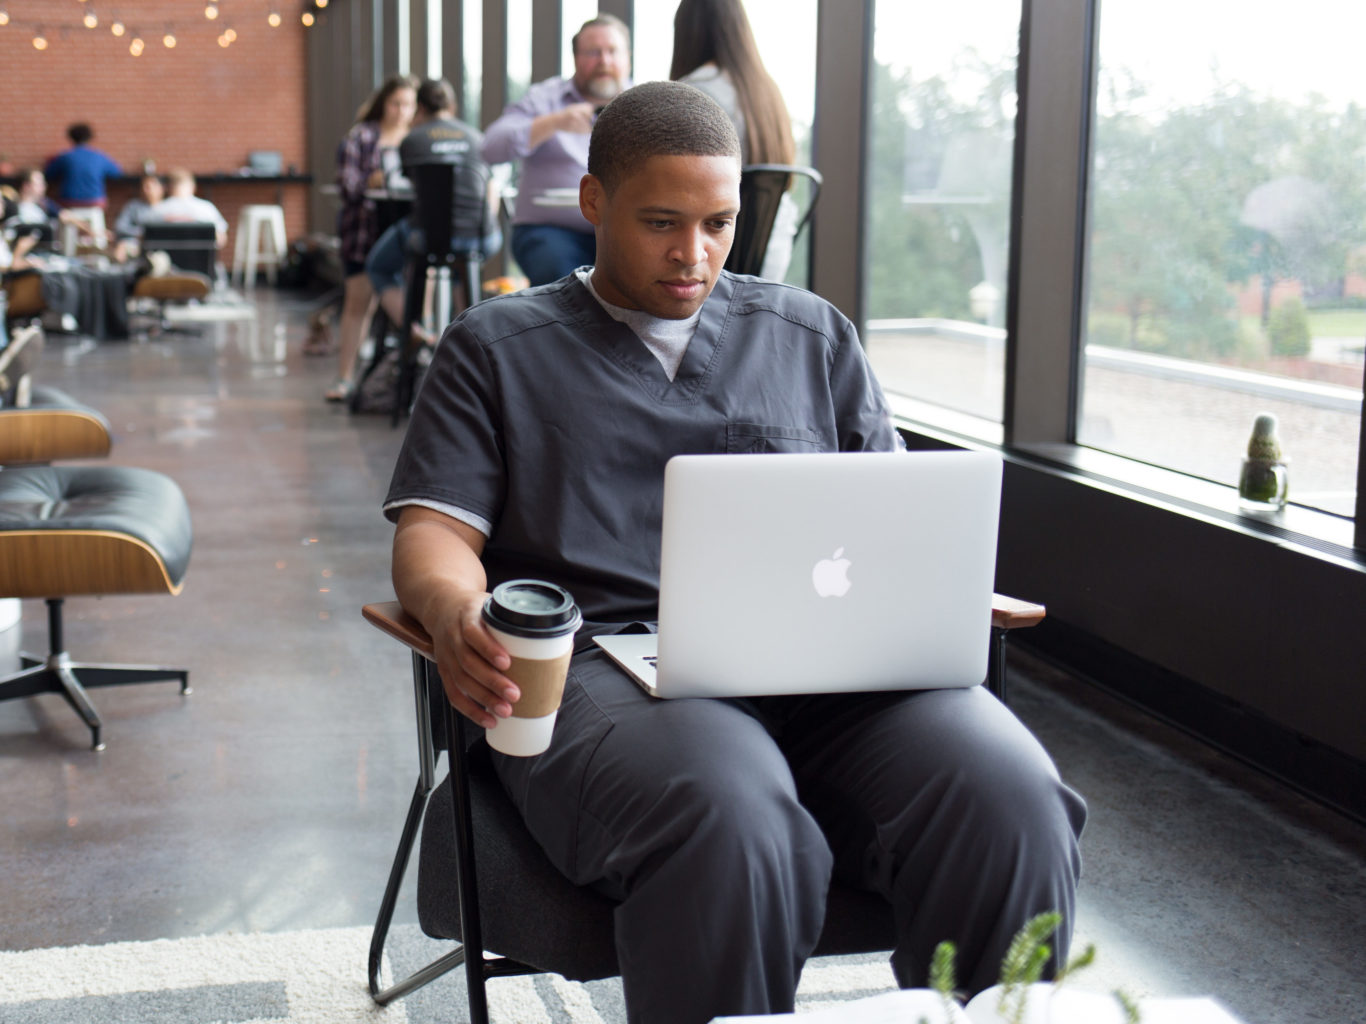 Nursing student in a coffee shop looking at a laptop